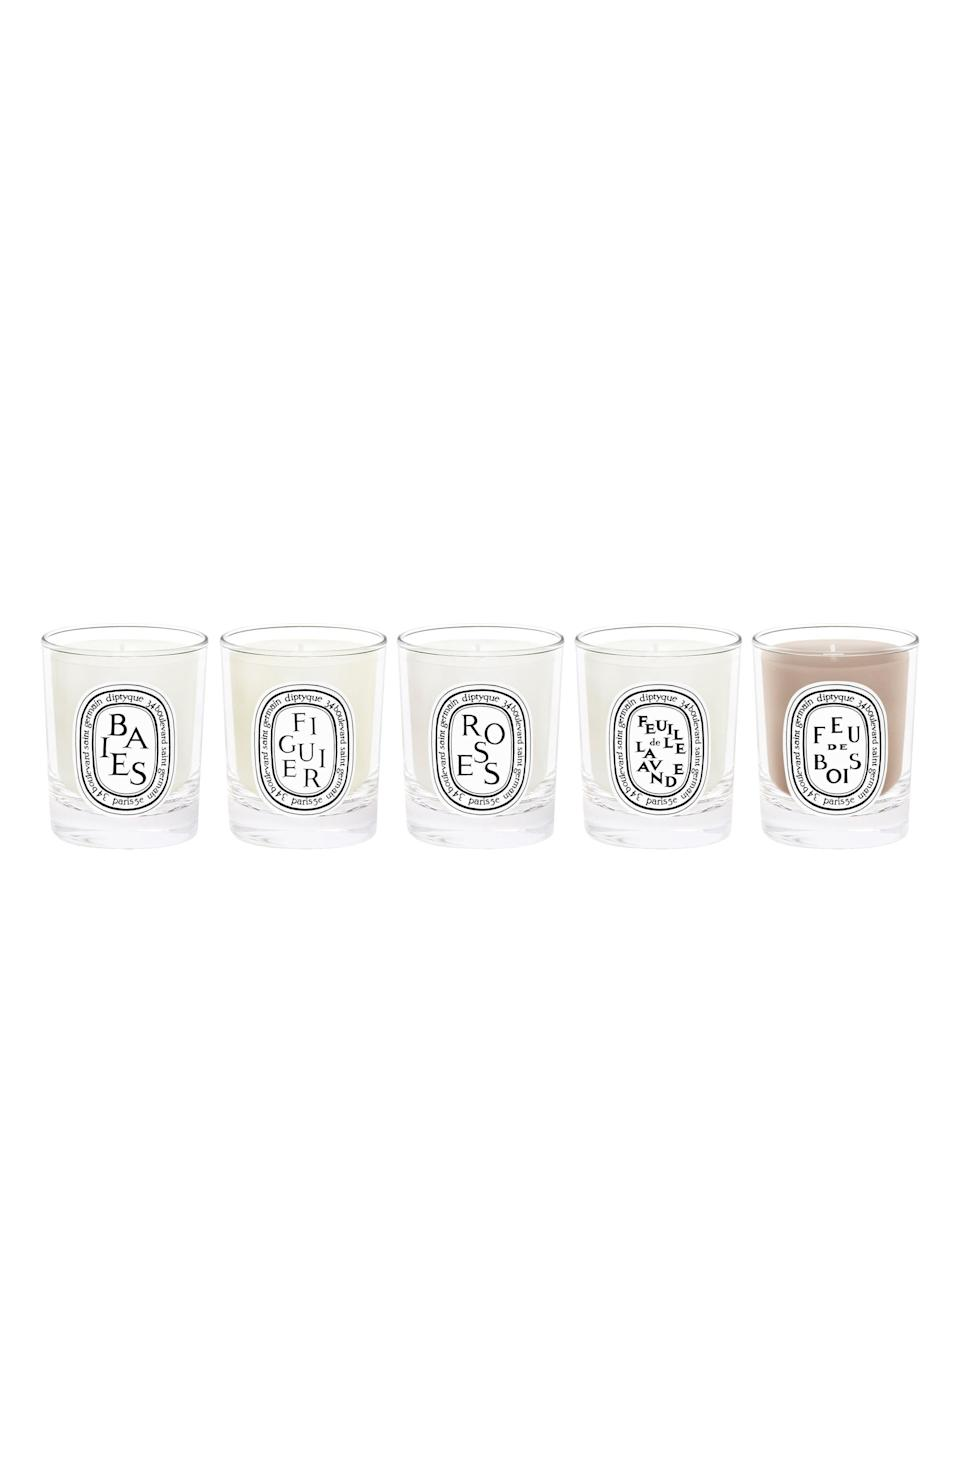 """<p><strong>DIPTYQUE</strong></p><p>nordstrom.com</p><p><a href=""""https://go.redirectingat.com?id=74968X1596630&url=https%3A%2F%2Fwww.nordstrom.com%2Fs%2Fdiptyque-travel-size-scented-candle-set-82-value%2F5894239&sref=https%3A%2F%2Fwww.elledecor.com%2Fshopping%2Fg37000502%2Fnordstrom-anniversary-sale-2021%2F"""" rel=""""nofollow noopener"""" target=""""_blank"""" data-ylk=""""slk:Shop Now"""" class=""""link rapid-noclick-resp"""">Shop Now</a></p><p><strong>Sale: $60<br></strong><strong>After Sale: $82</strong></p><p>A new candle for every room? Sign us up. <br></p>"""